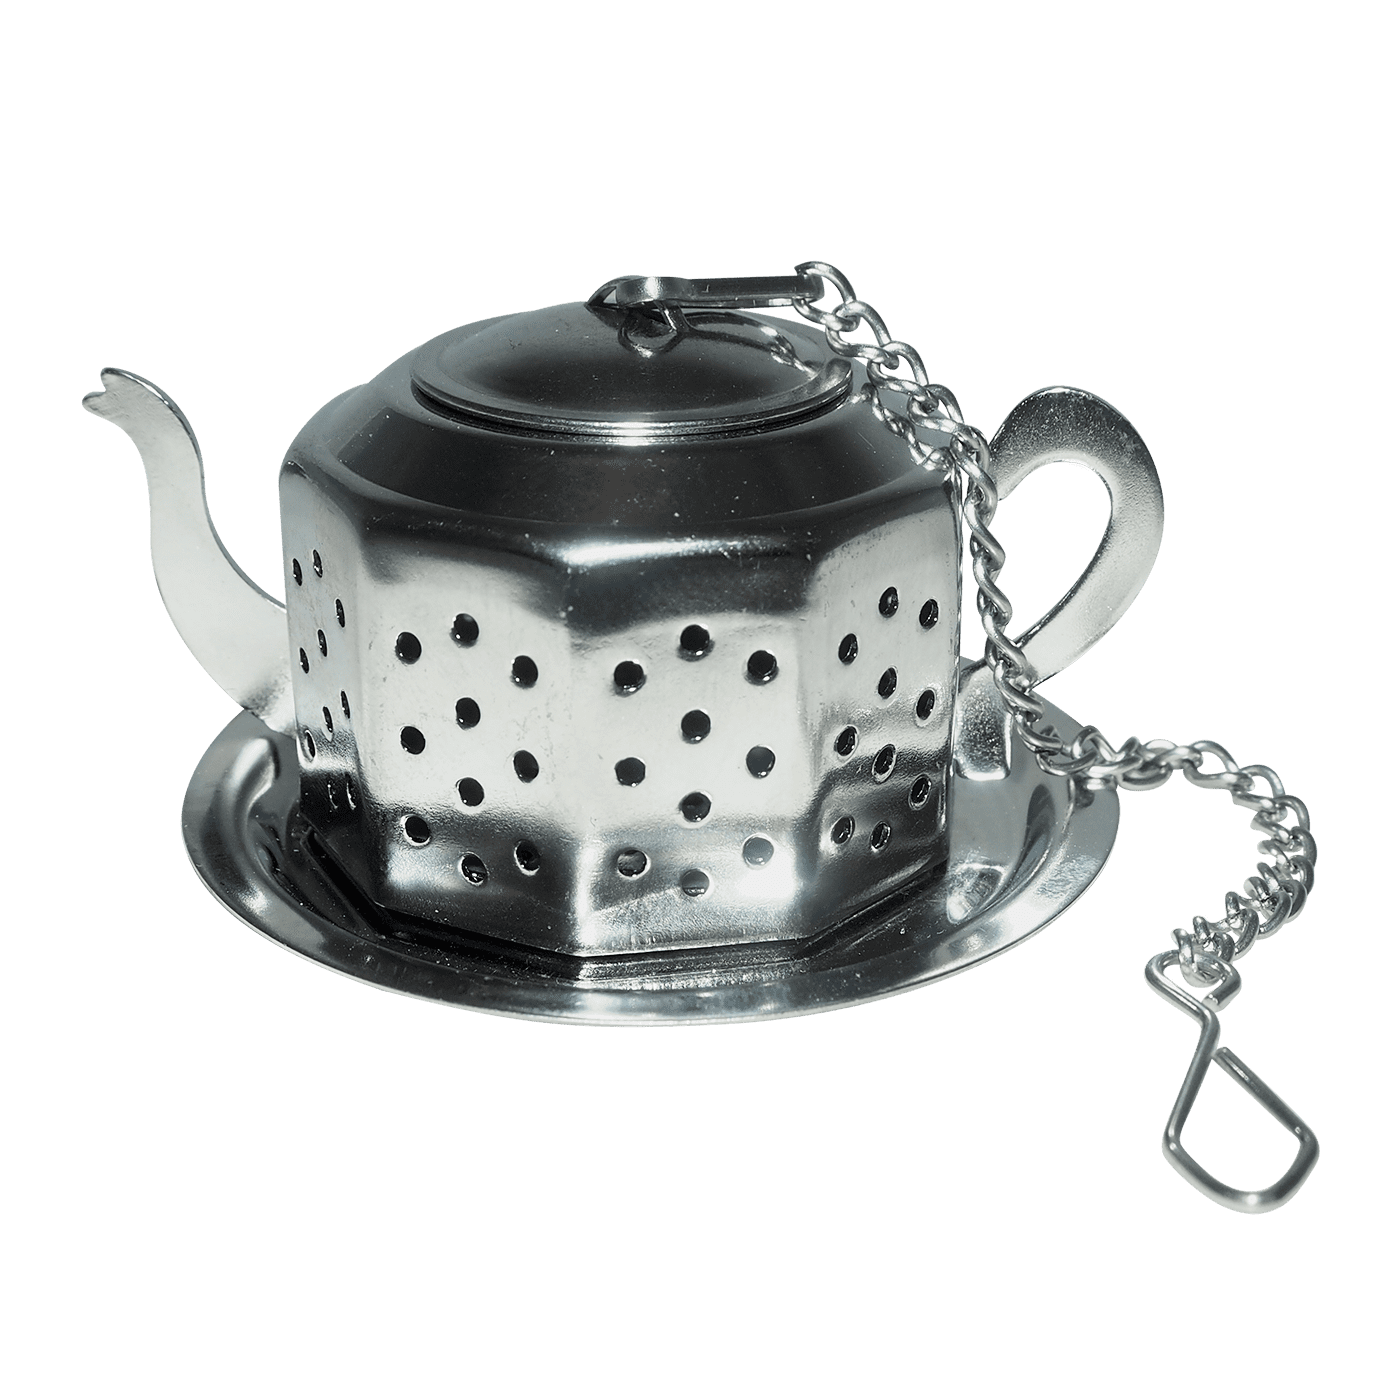 Stainless Tea Infuser